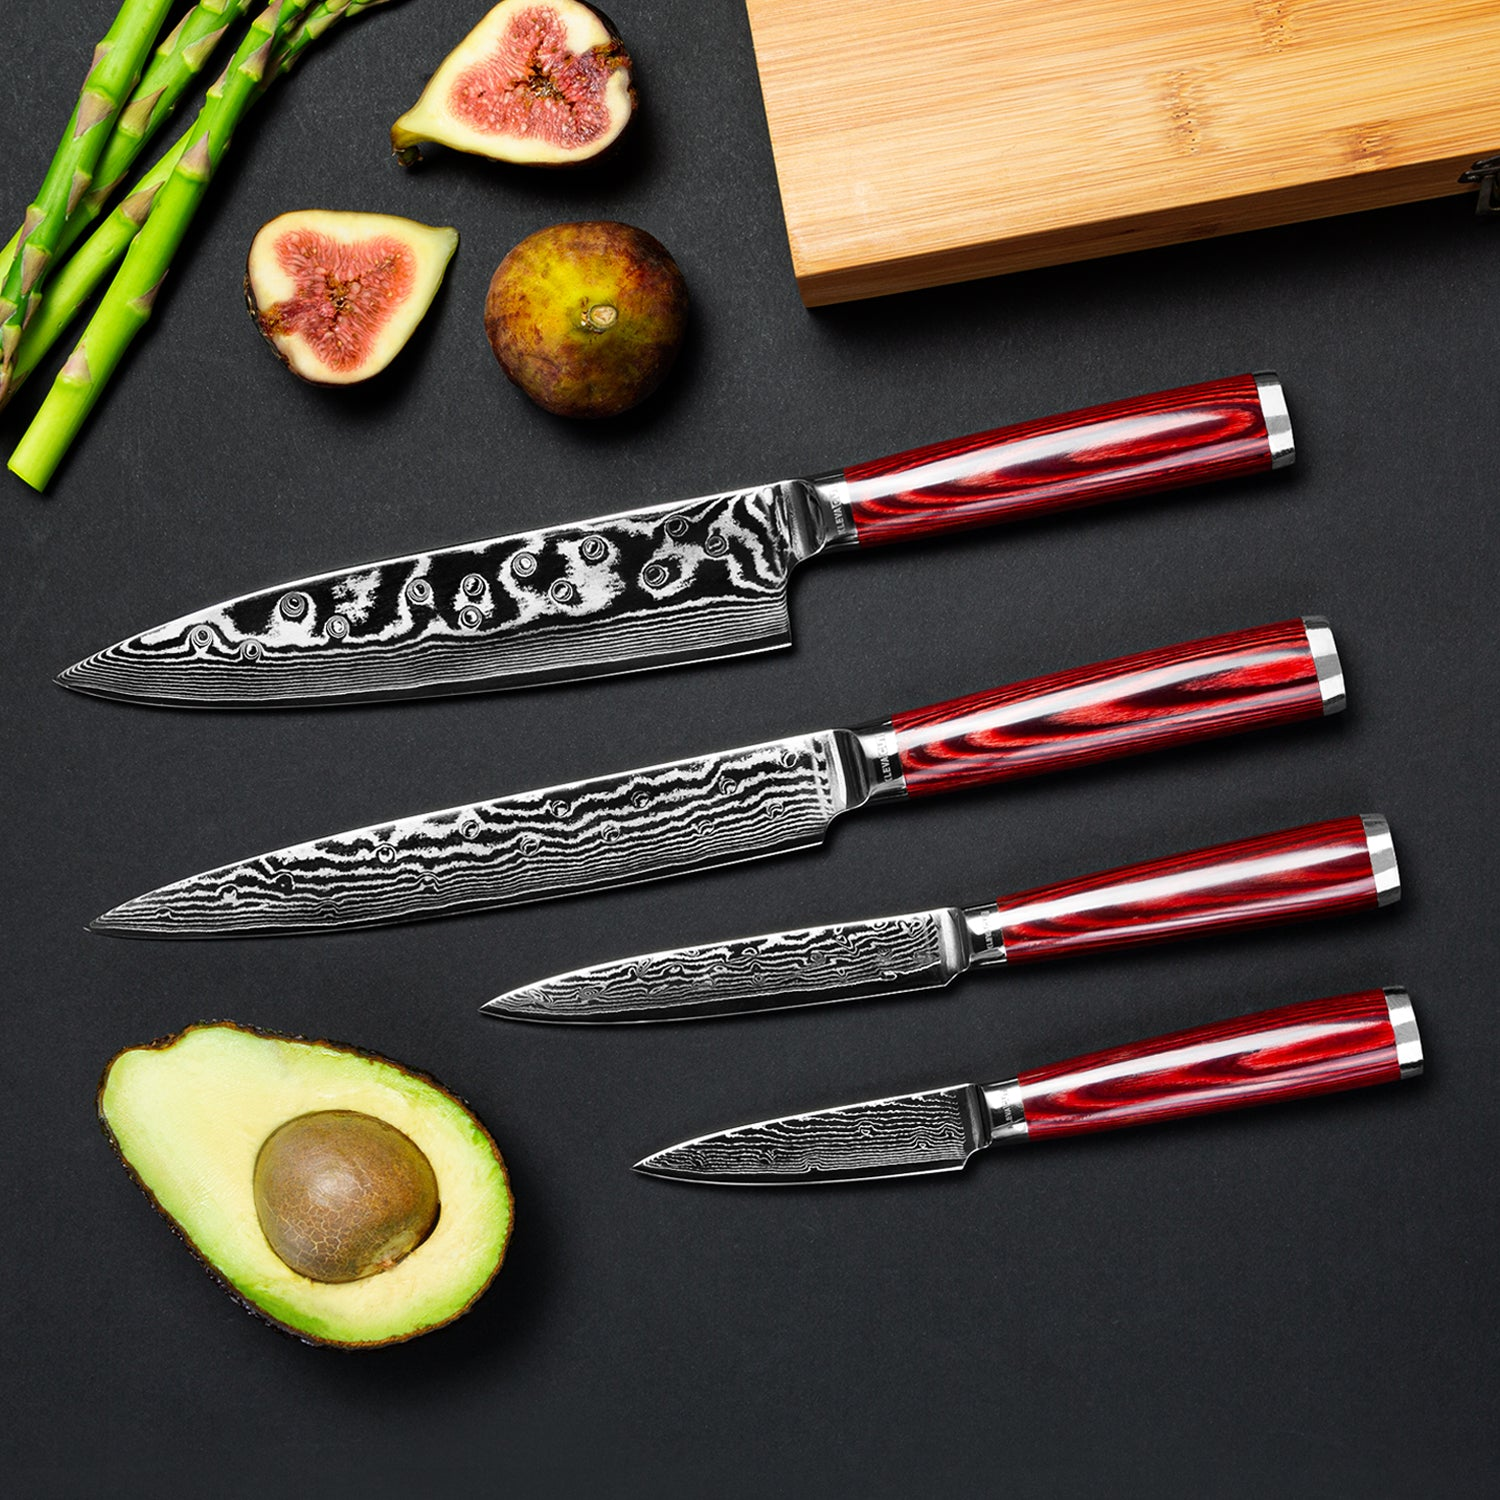 Stunning 67 layer Damascus Steel Knife set FREE Postage 10 year guarantee